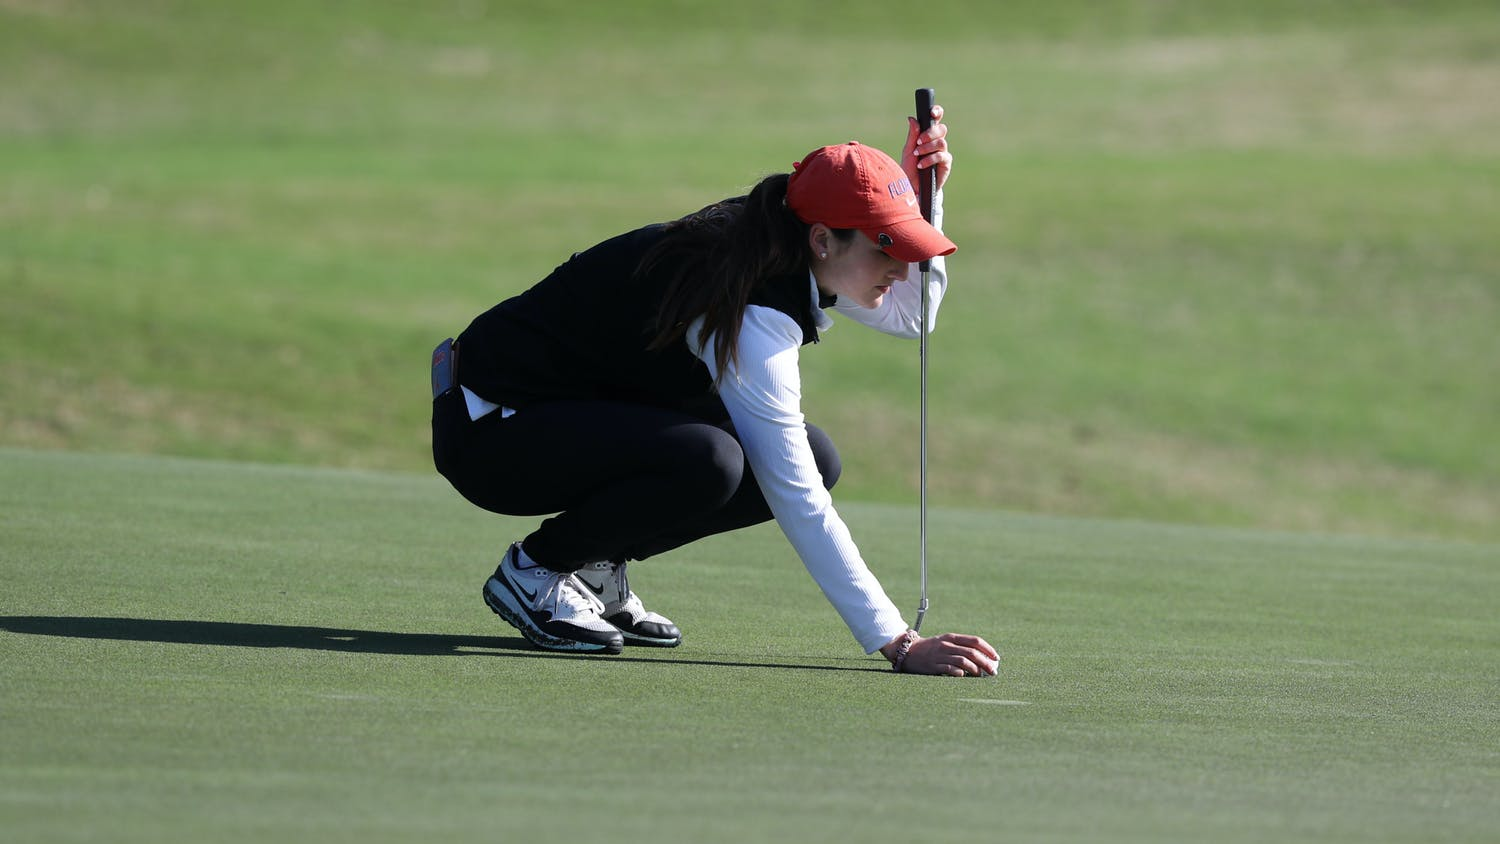 Florida Gators women's golf on Sunday, February 21, 2021 at the Mark Bostick Golf Course in Gainesville, FL / UAA Communications photo by Alex de la Osa